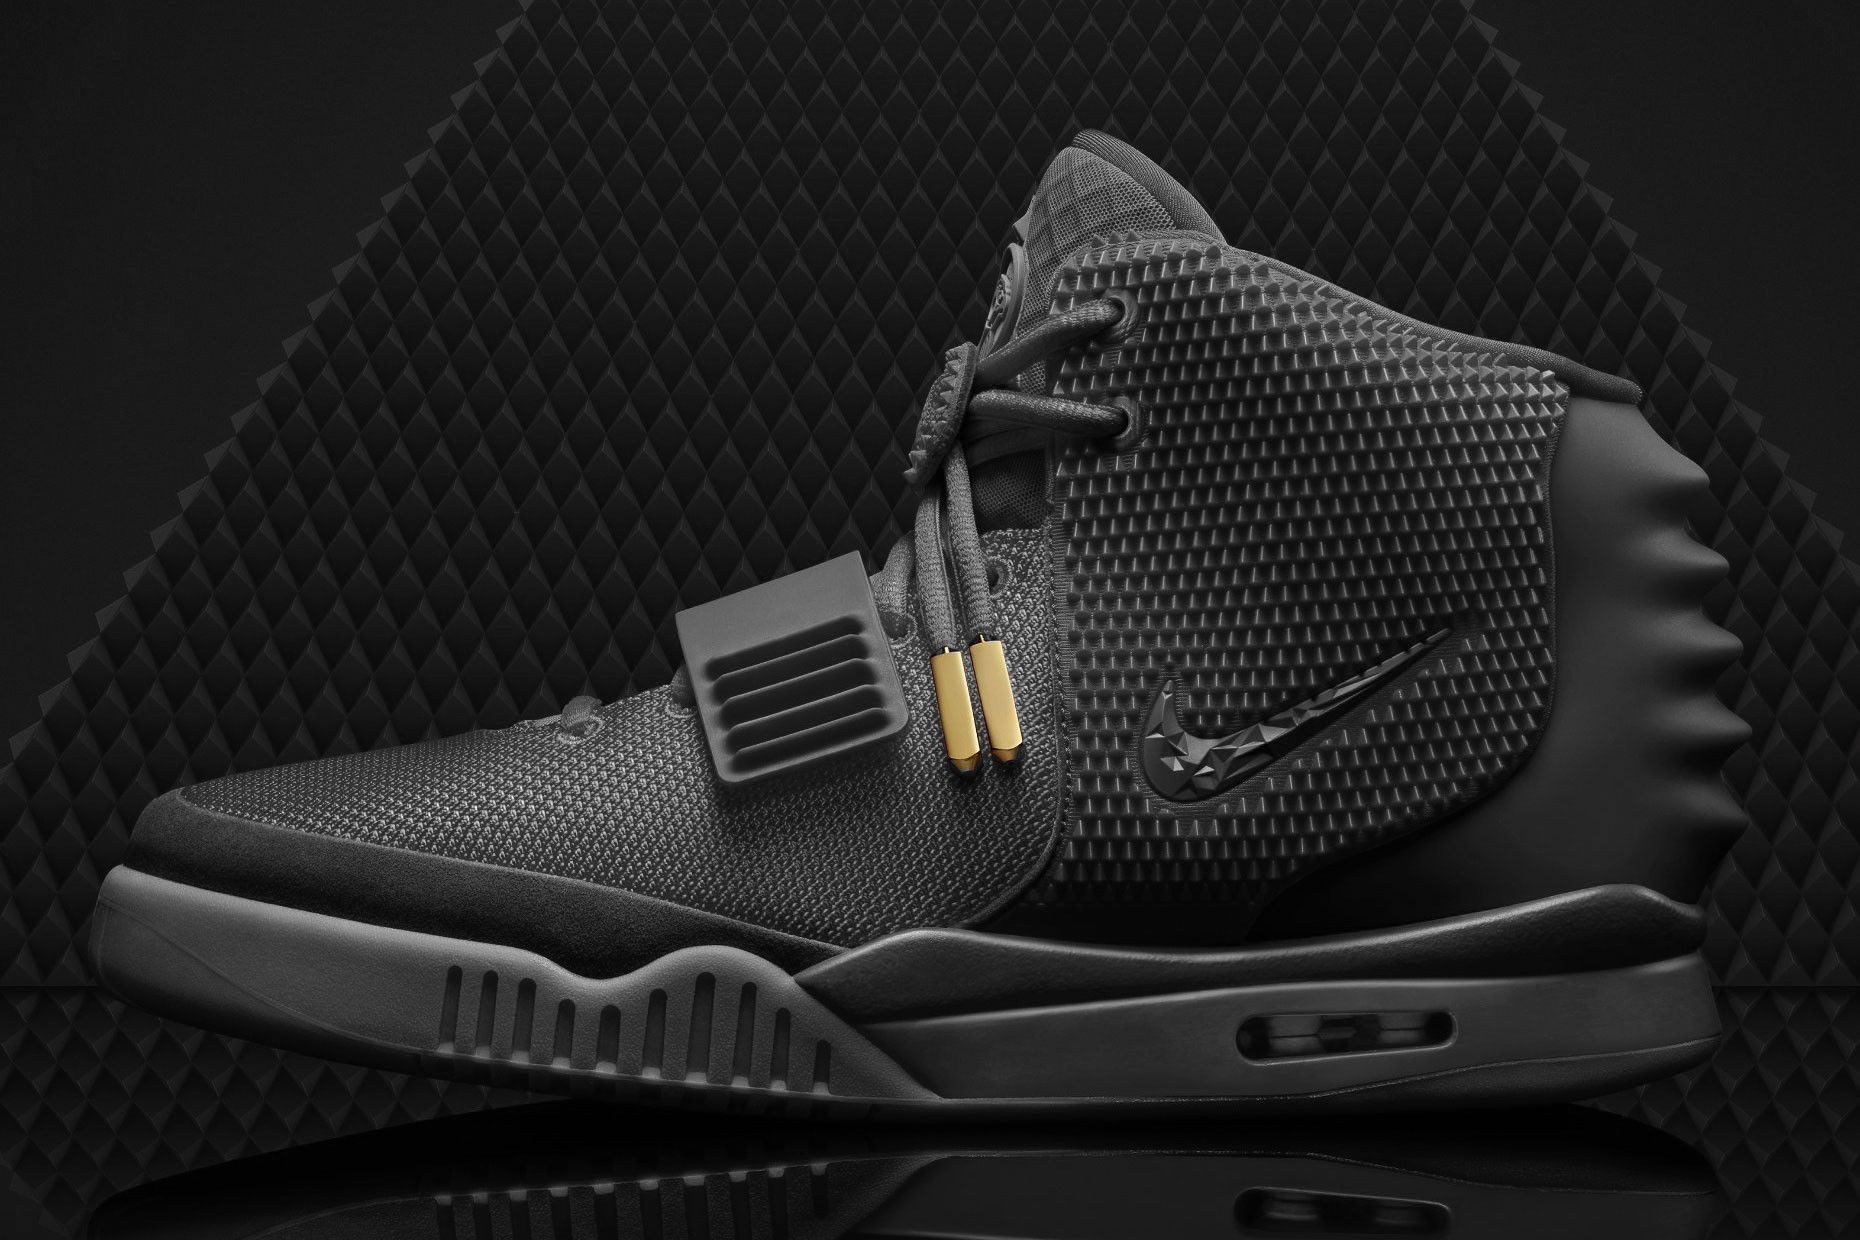 b84db2495 Nike Air Yeezy II Black October Concept